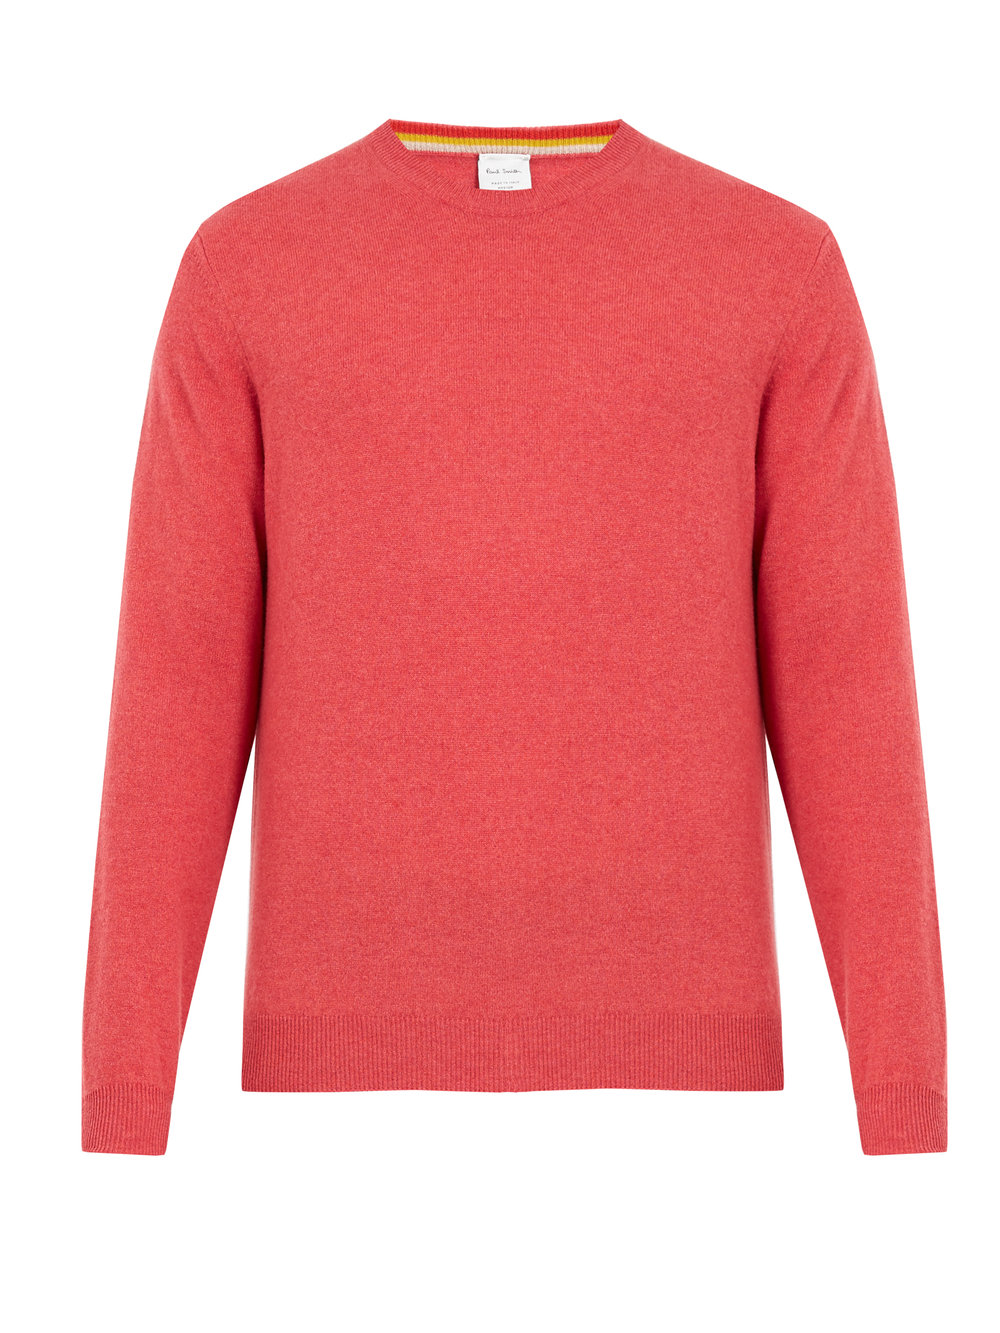 9. Paul Smith sweater at MATCHESFASHION.COM.Jpeg